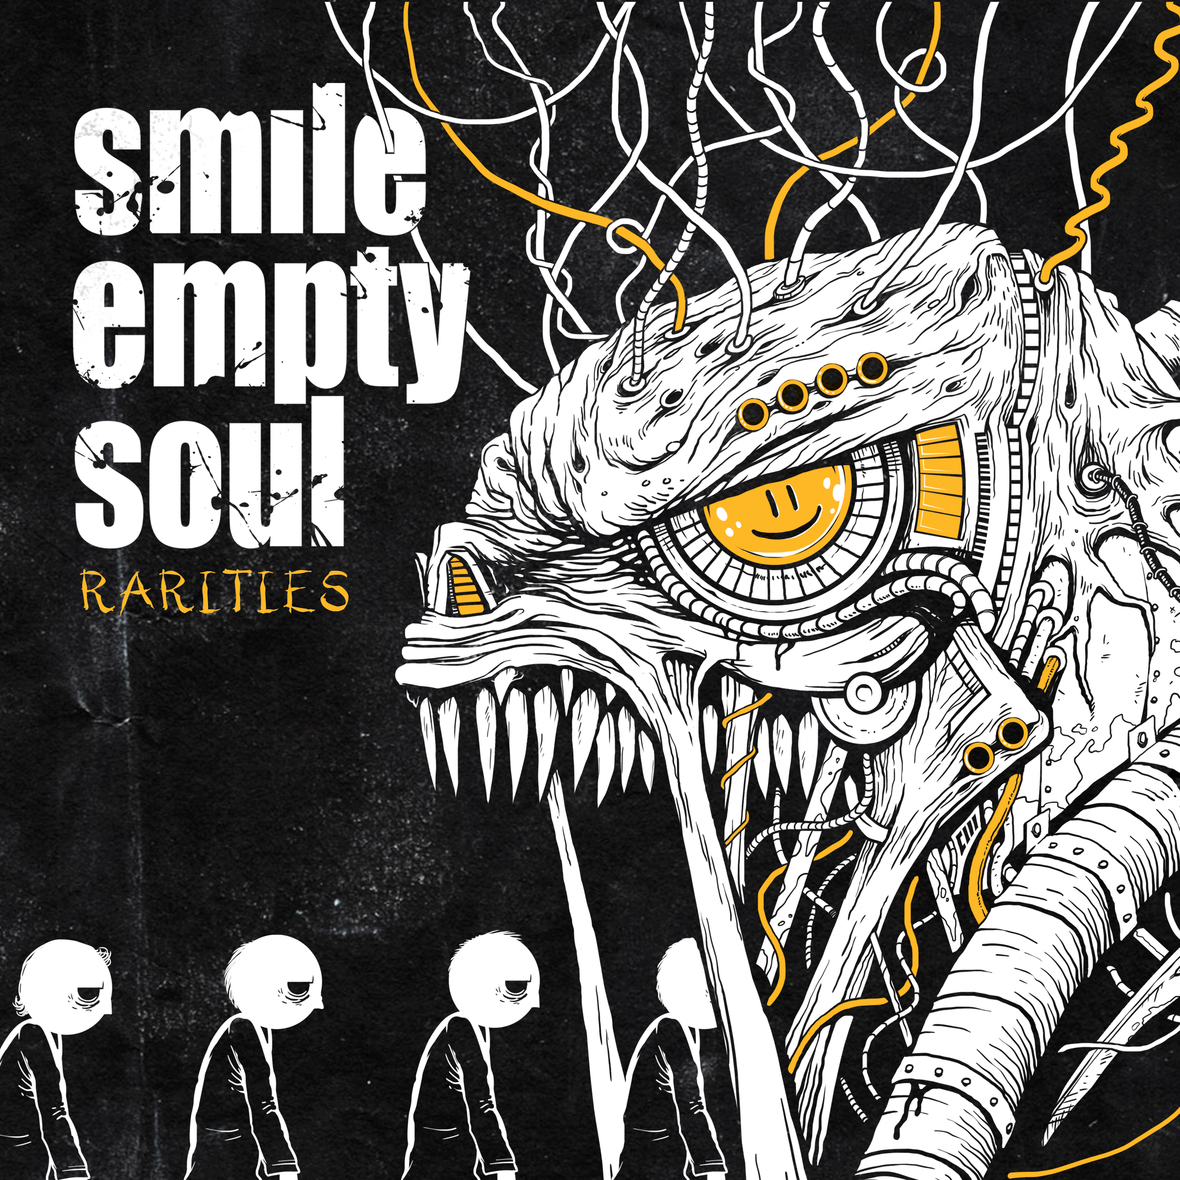 Smile Empty Soul - Rarities - Album Cover